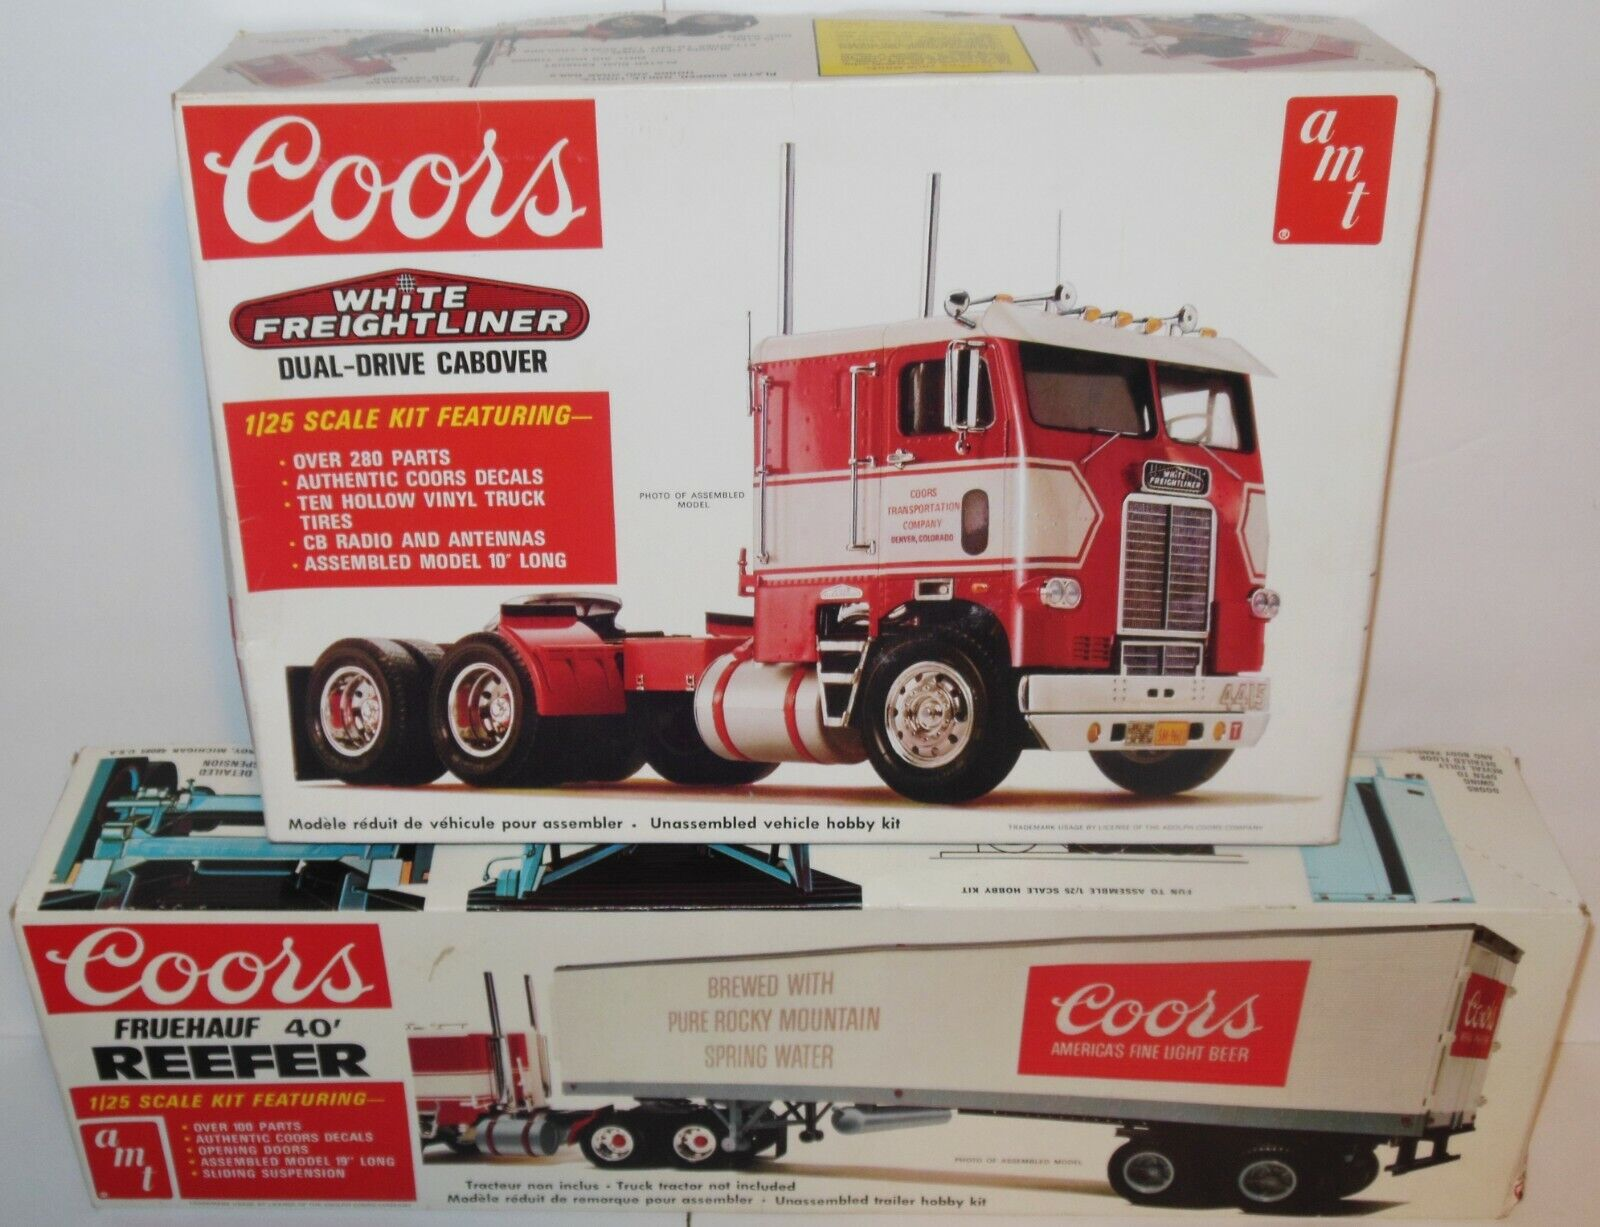 Photo AMT: Coors White Freightliner Cabover Semi & Fruehauf Reefer Trailer 1:25 kits